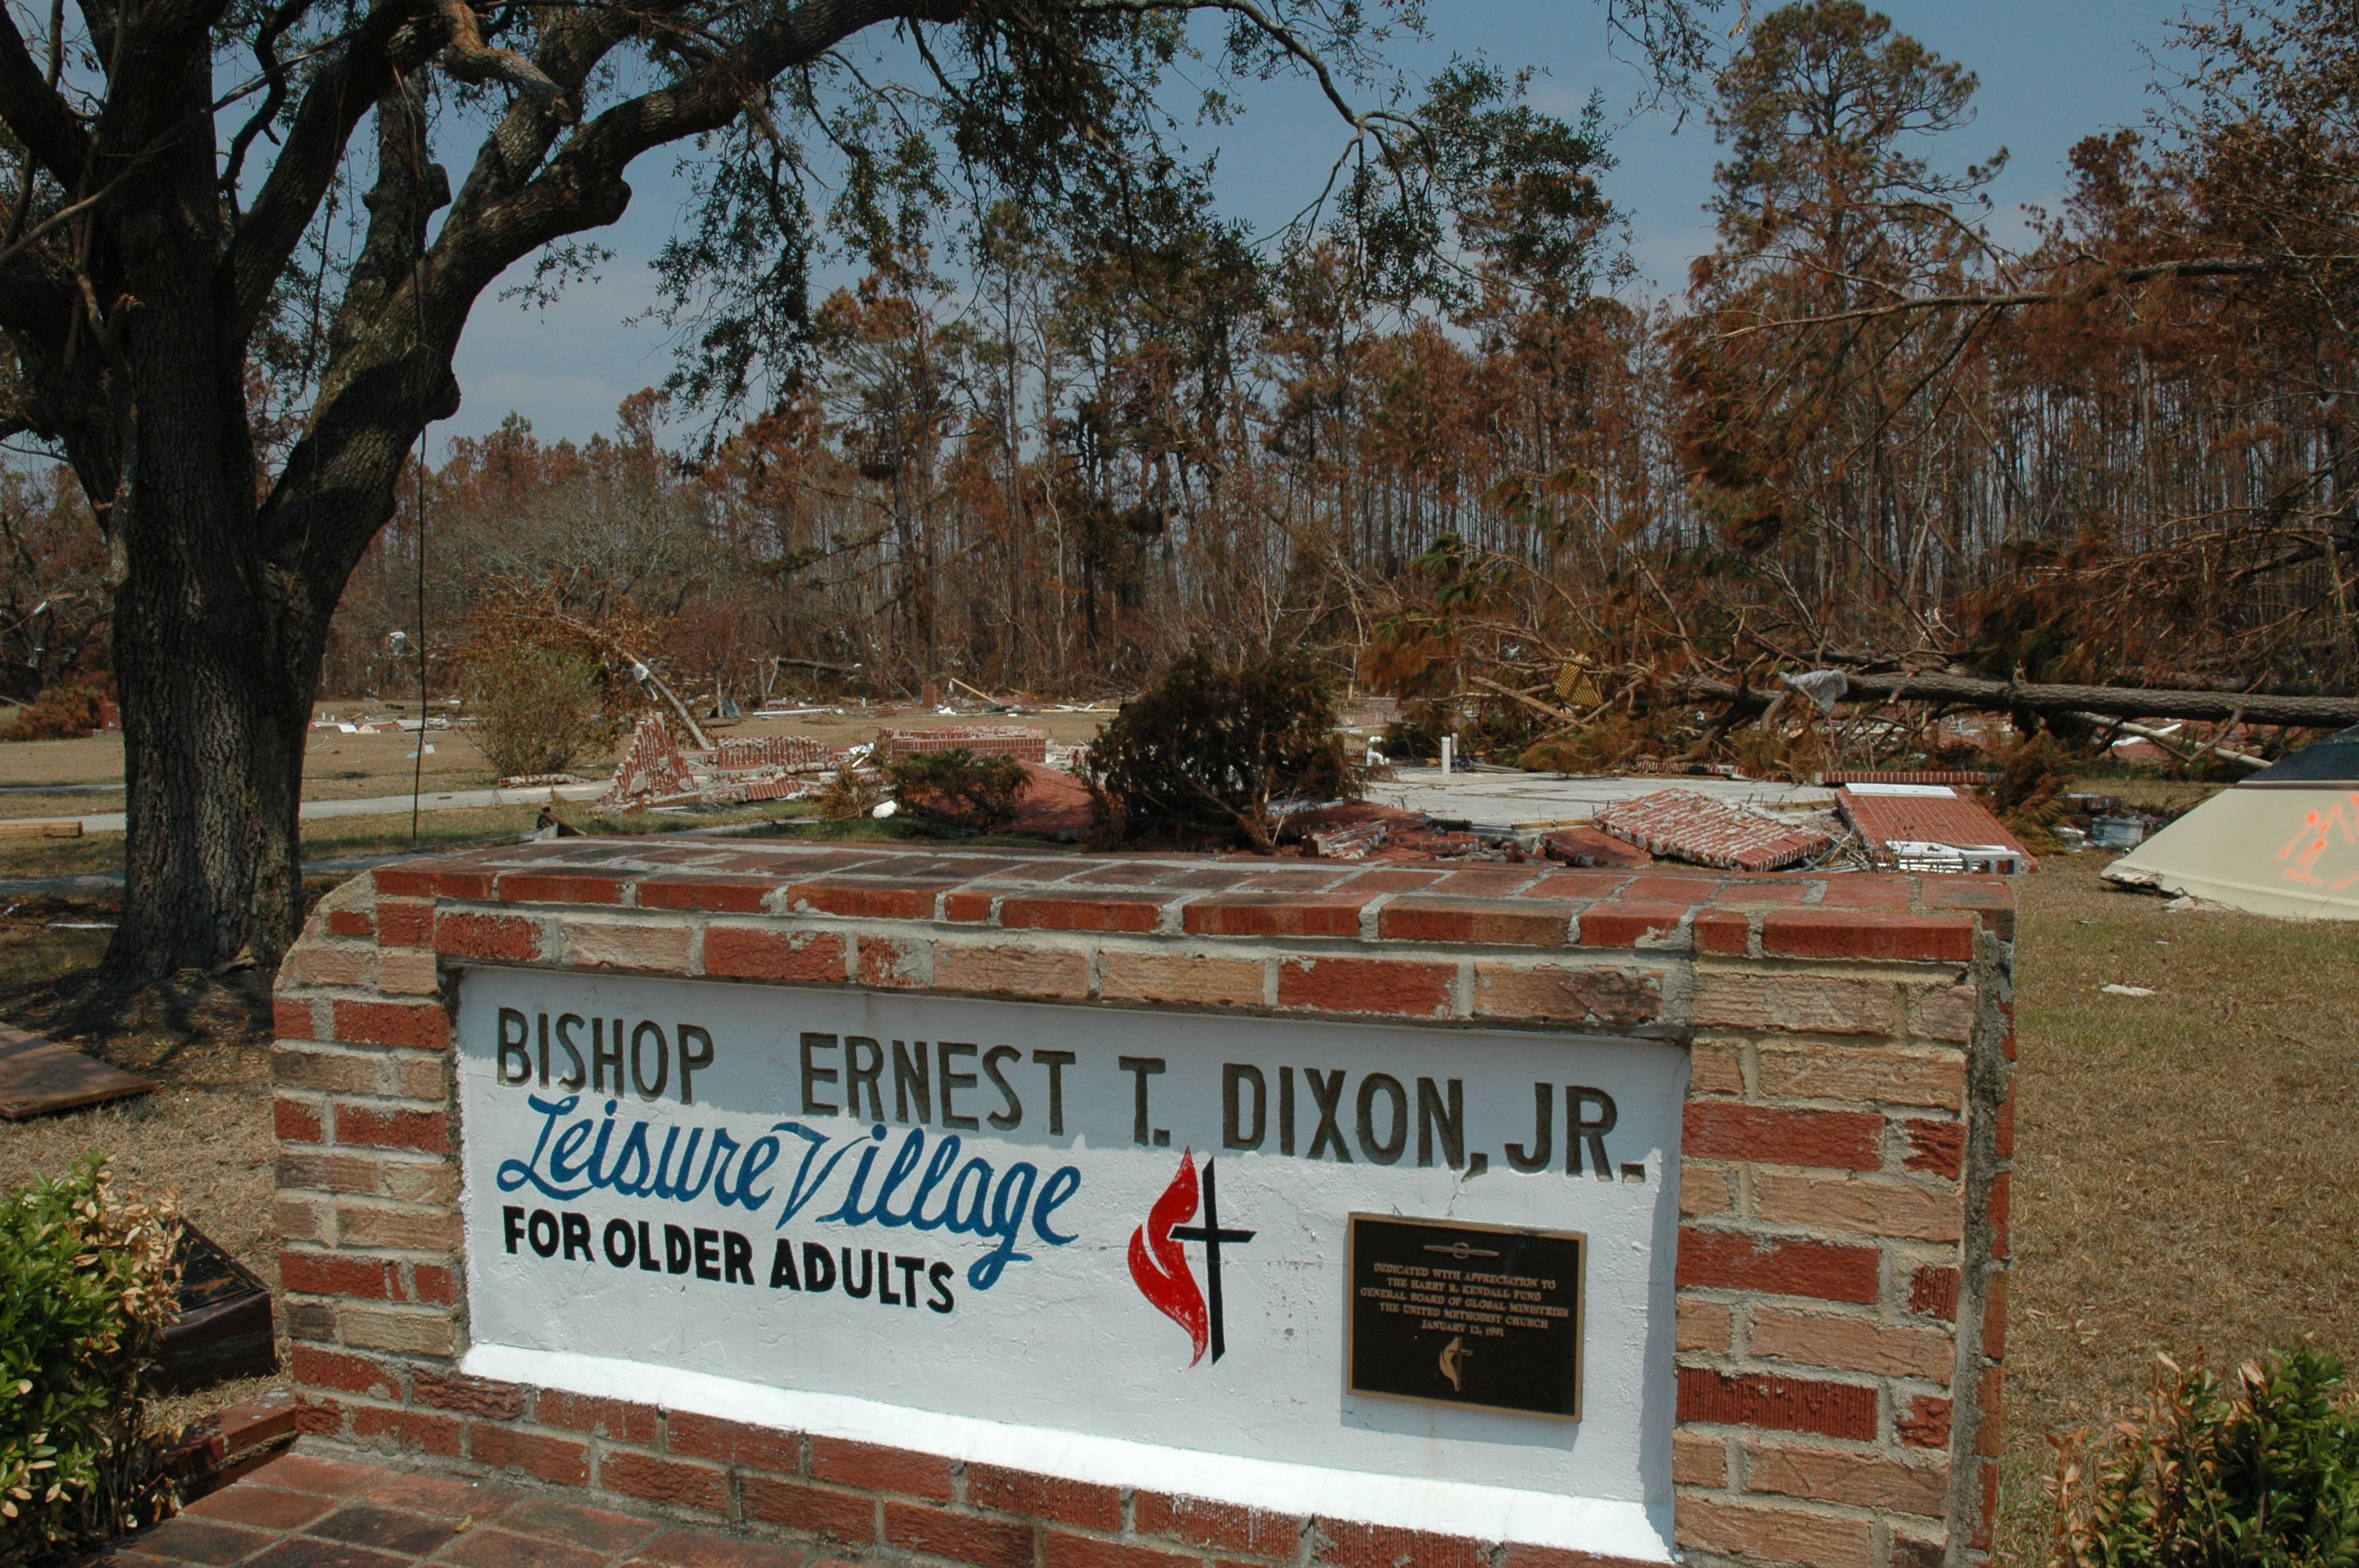 While the cottages that made up Gulfside's Ernest T. Dixon Leisure Village for Older Adults no longer exist, the sign remains unharmed. A UMNS photo by the Rev. Larry Hollon.